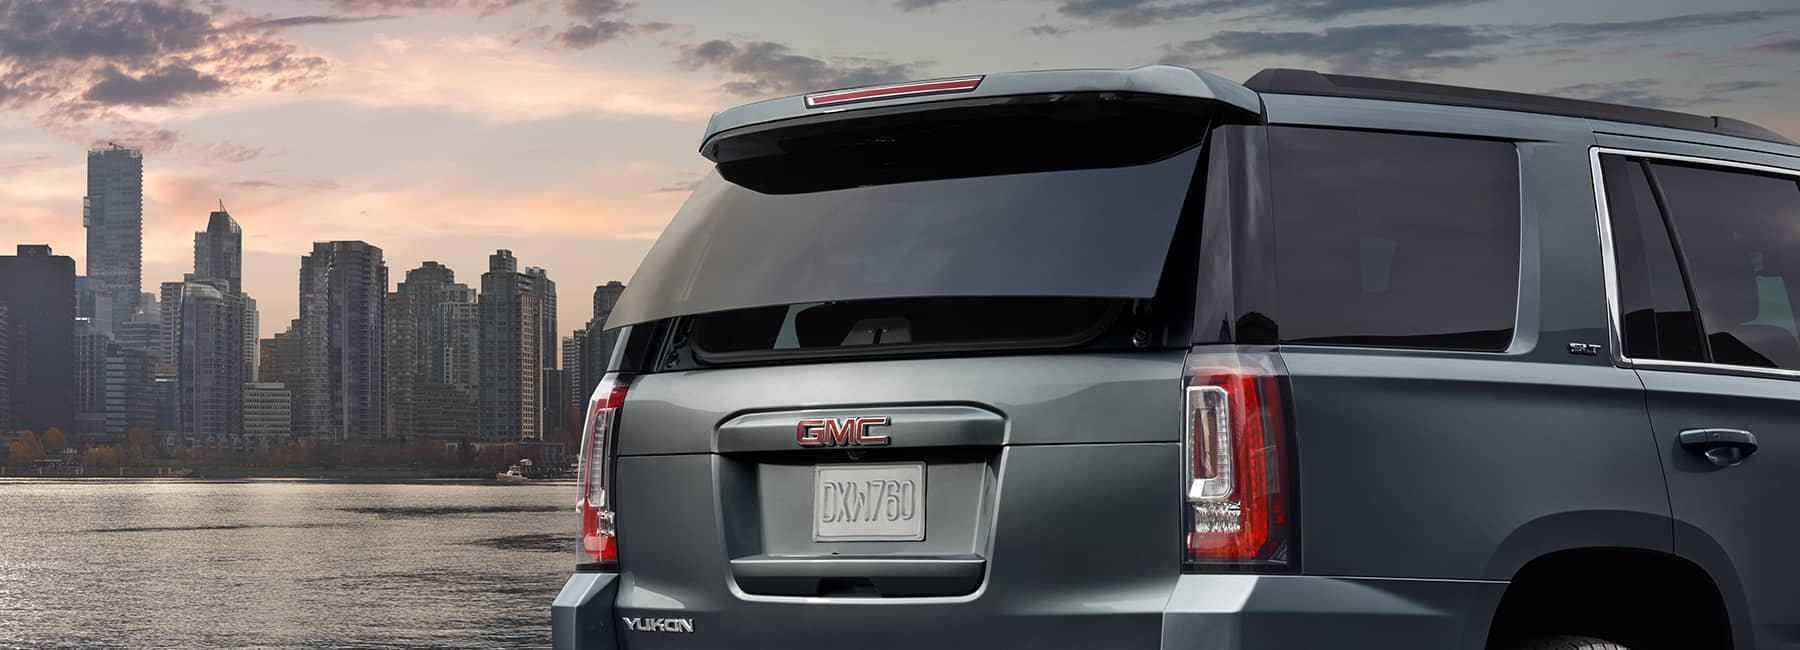 Smokey Blue 2020 GMC Yukon Rear